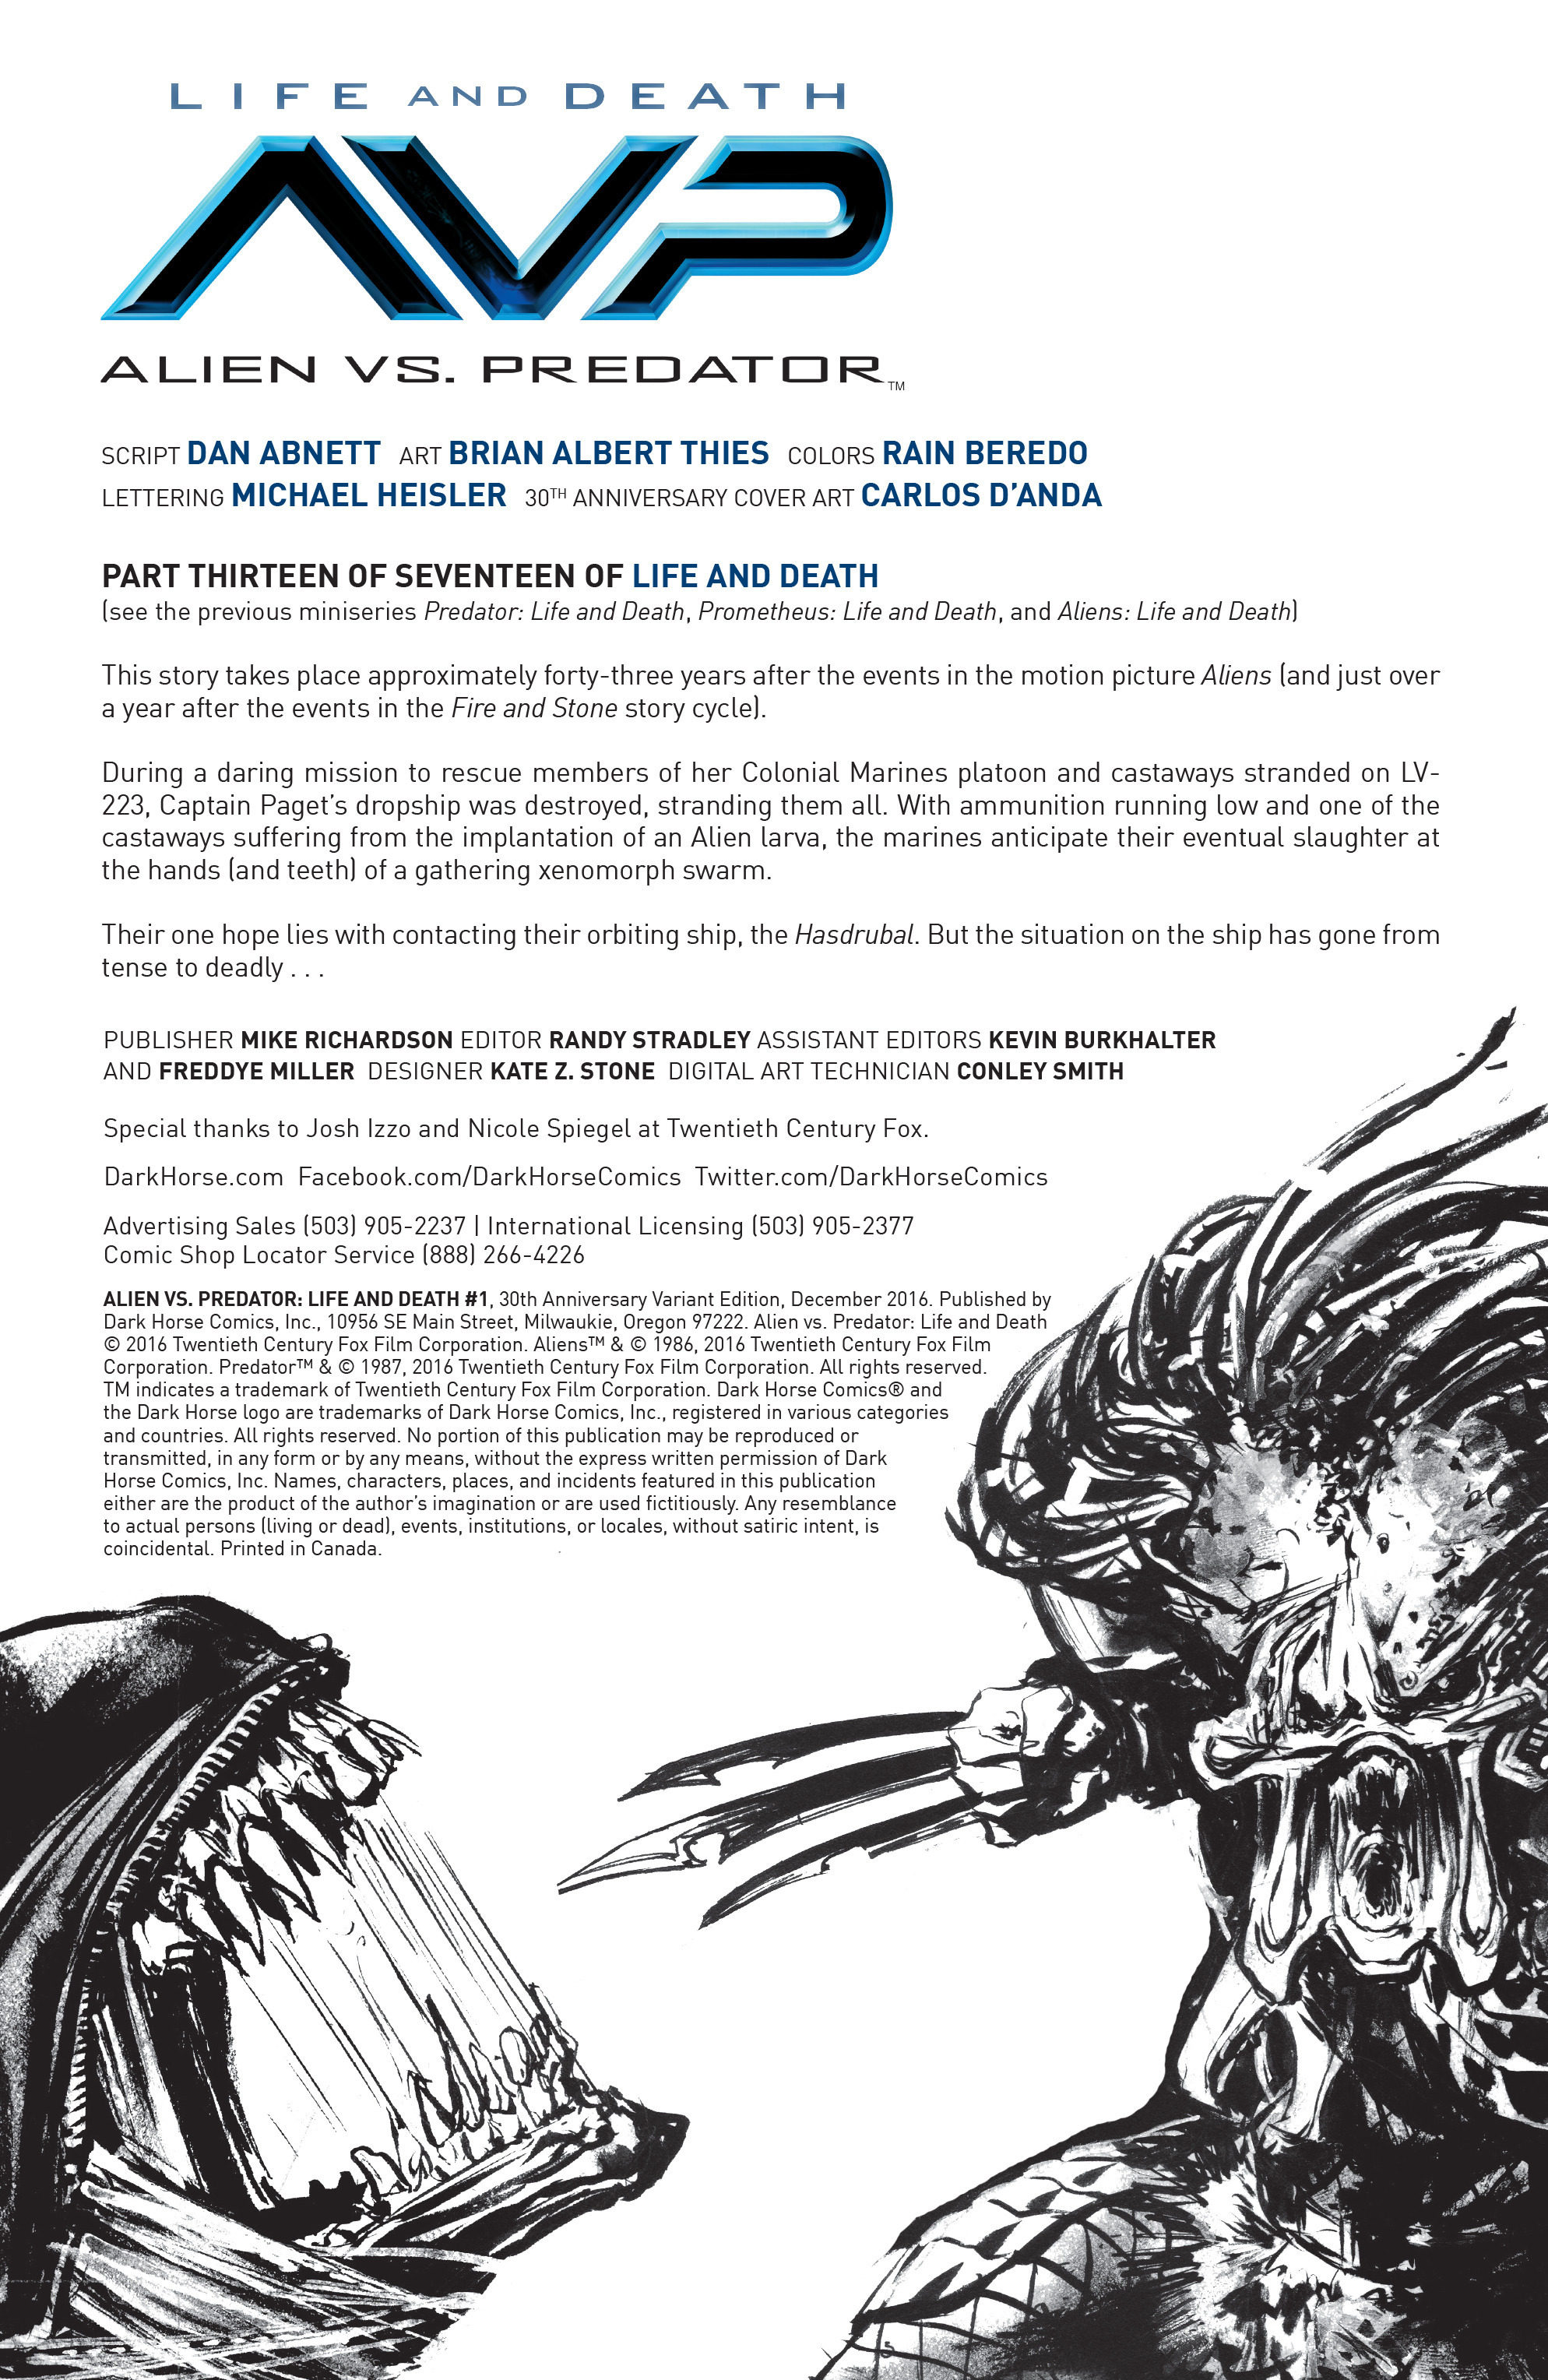 Read online Alien Vs. Predator: Life and Death comic -  Issue #1 - 6